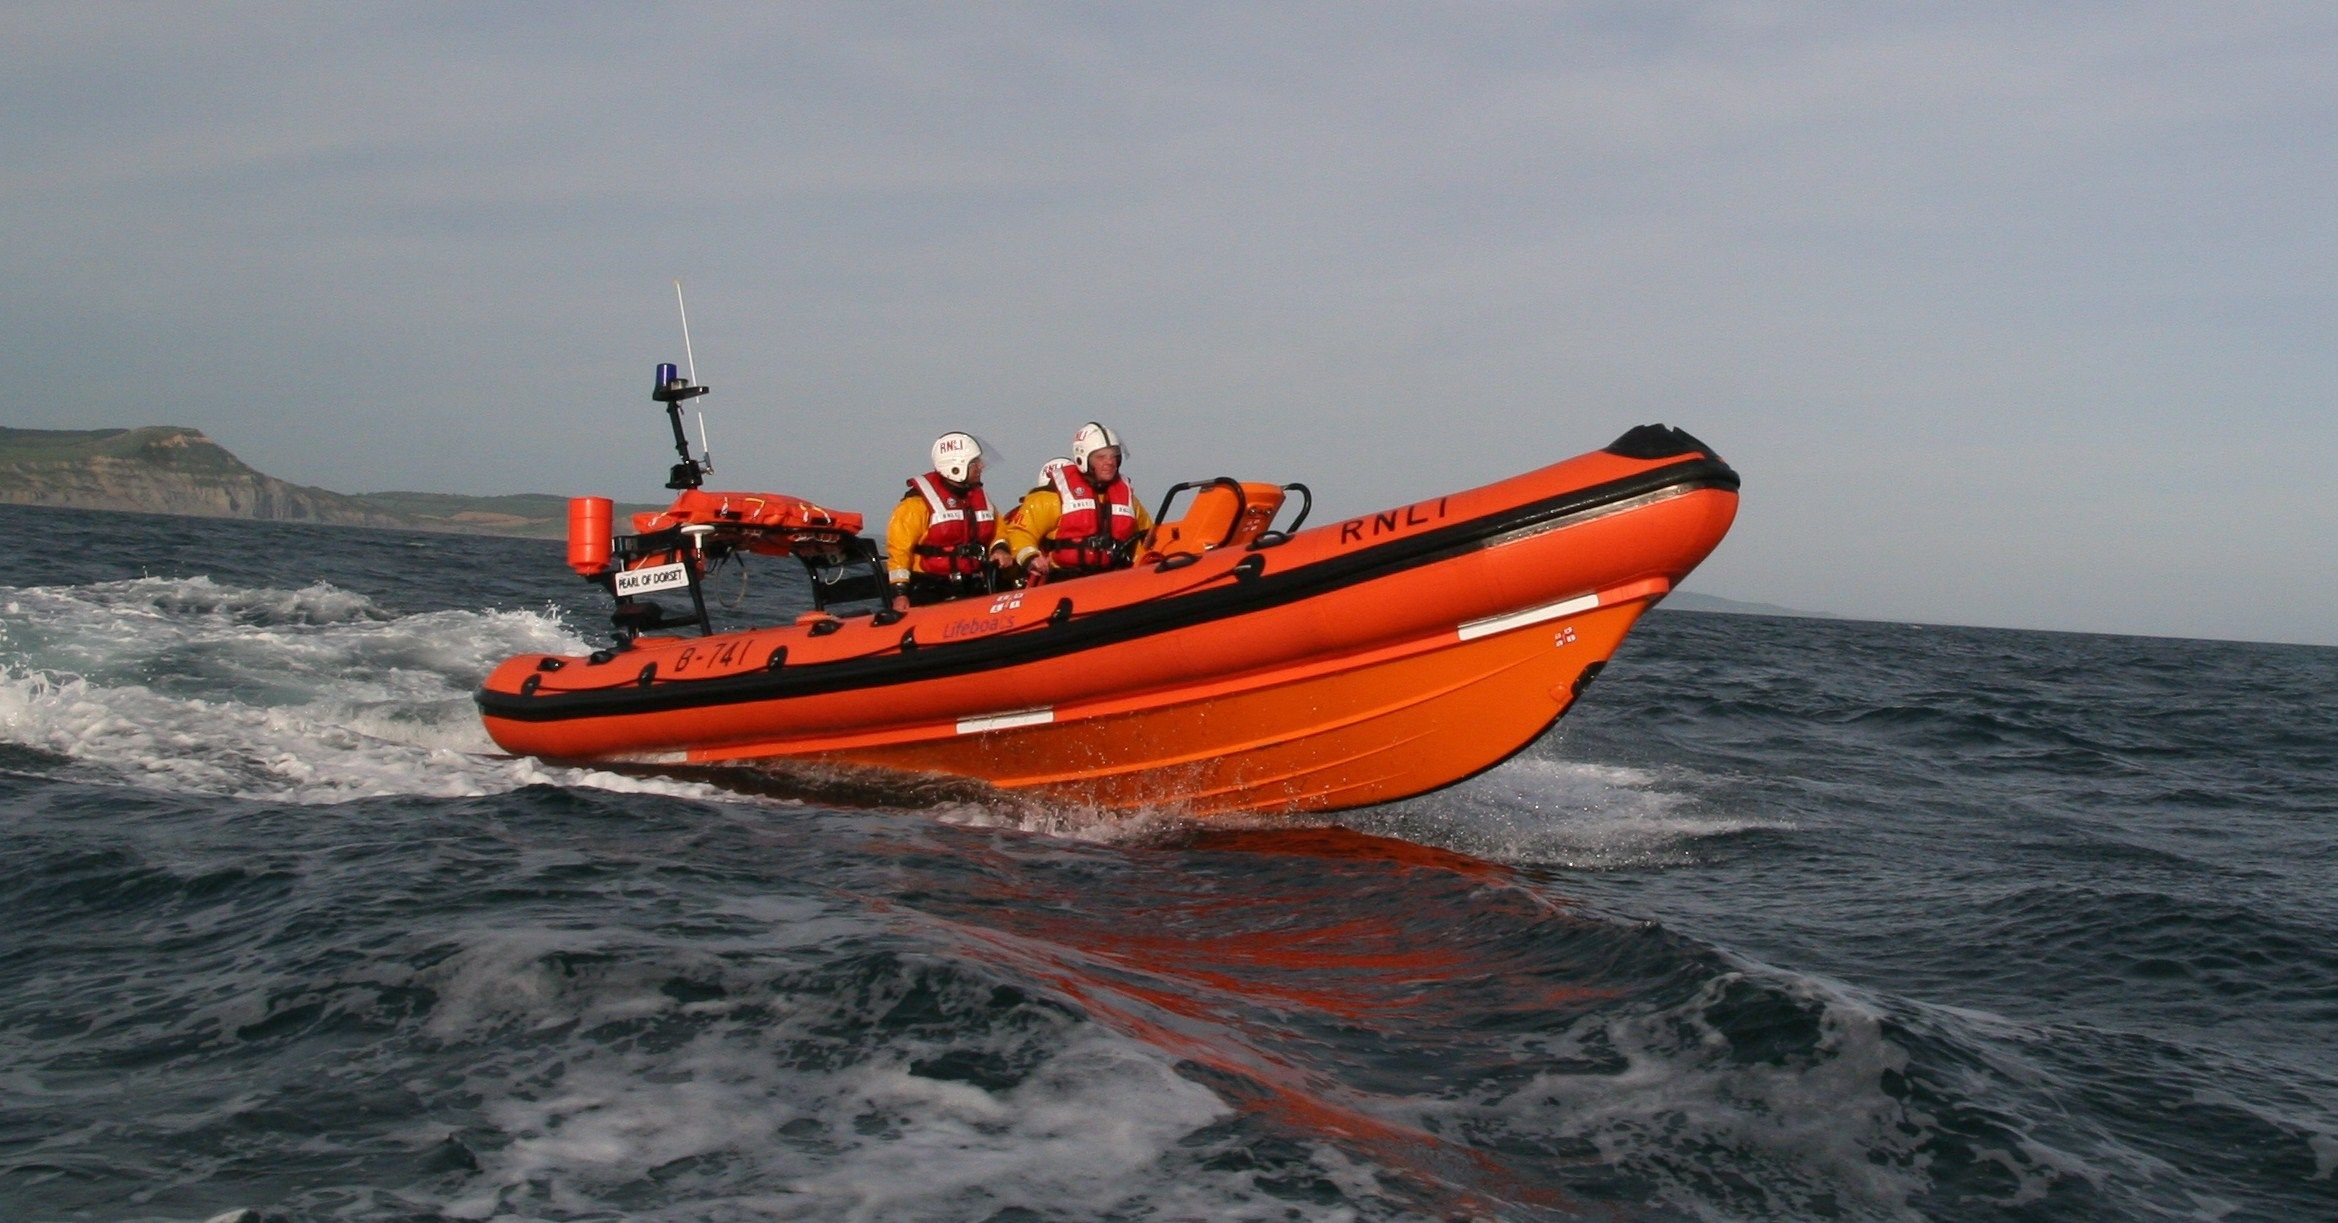 Rescue drama as person pulled from sea in stormy conditions